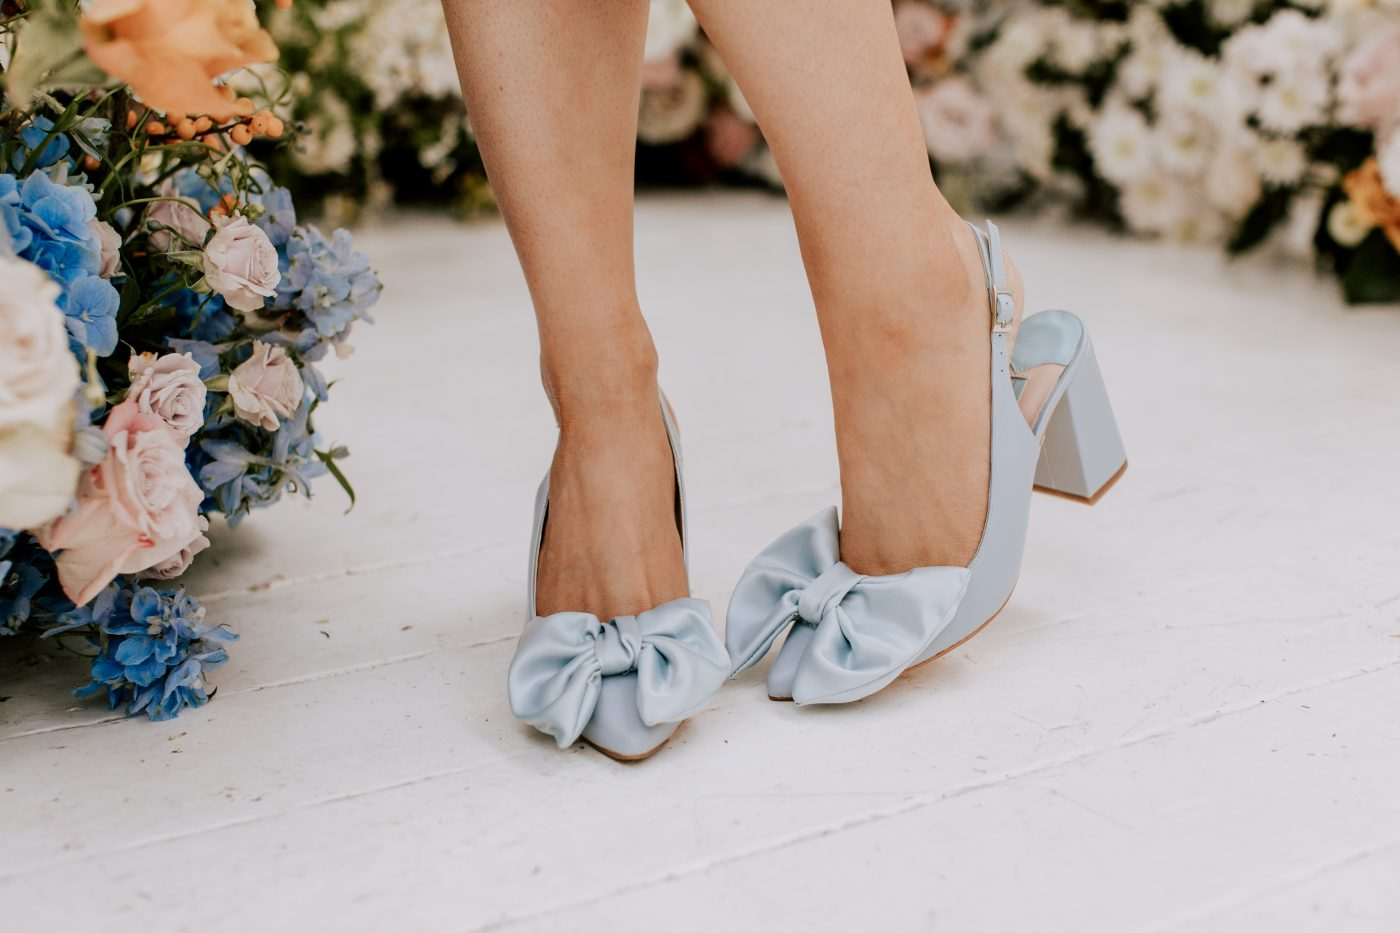 """<a href=""""https://charlottemills.com/collections/wedding-shoes/products/jill-pale-blue-bow"""" target=""""_blank"""" rel=""""noopener noreferrer"""">Jill Pale Blue by Charlotte Mills</a> £260"""